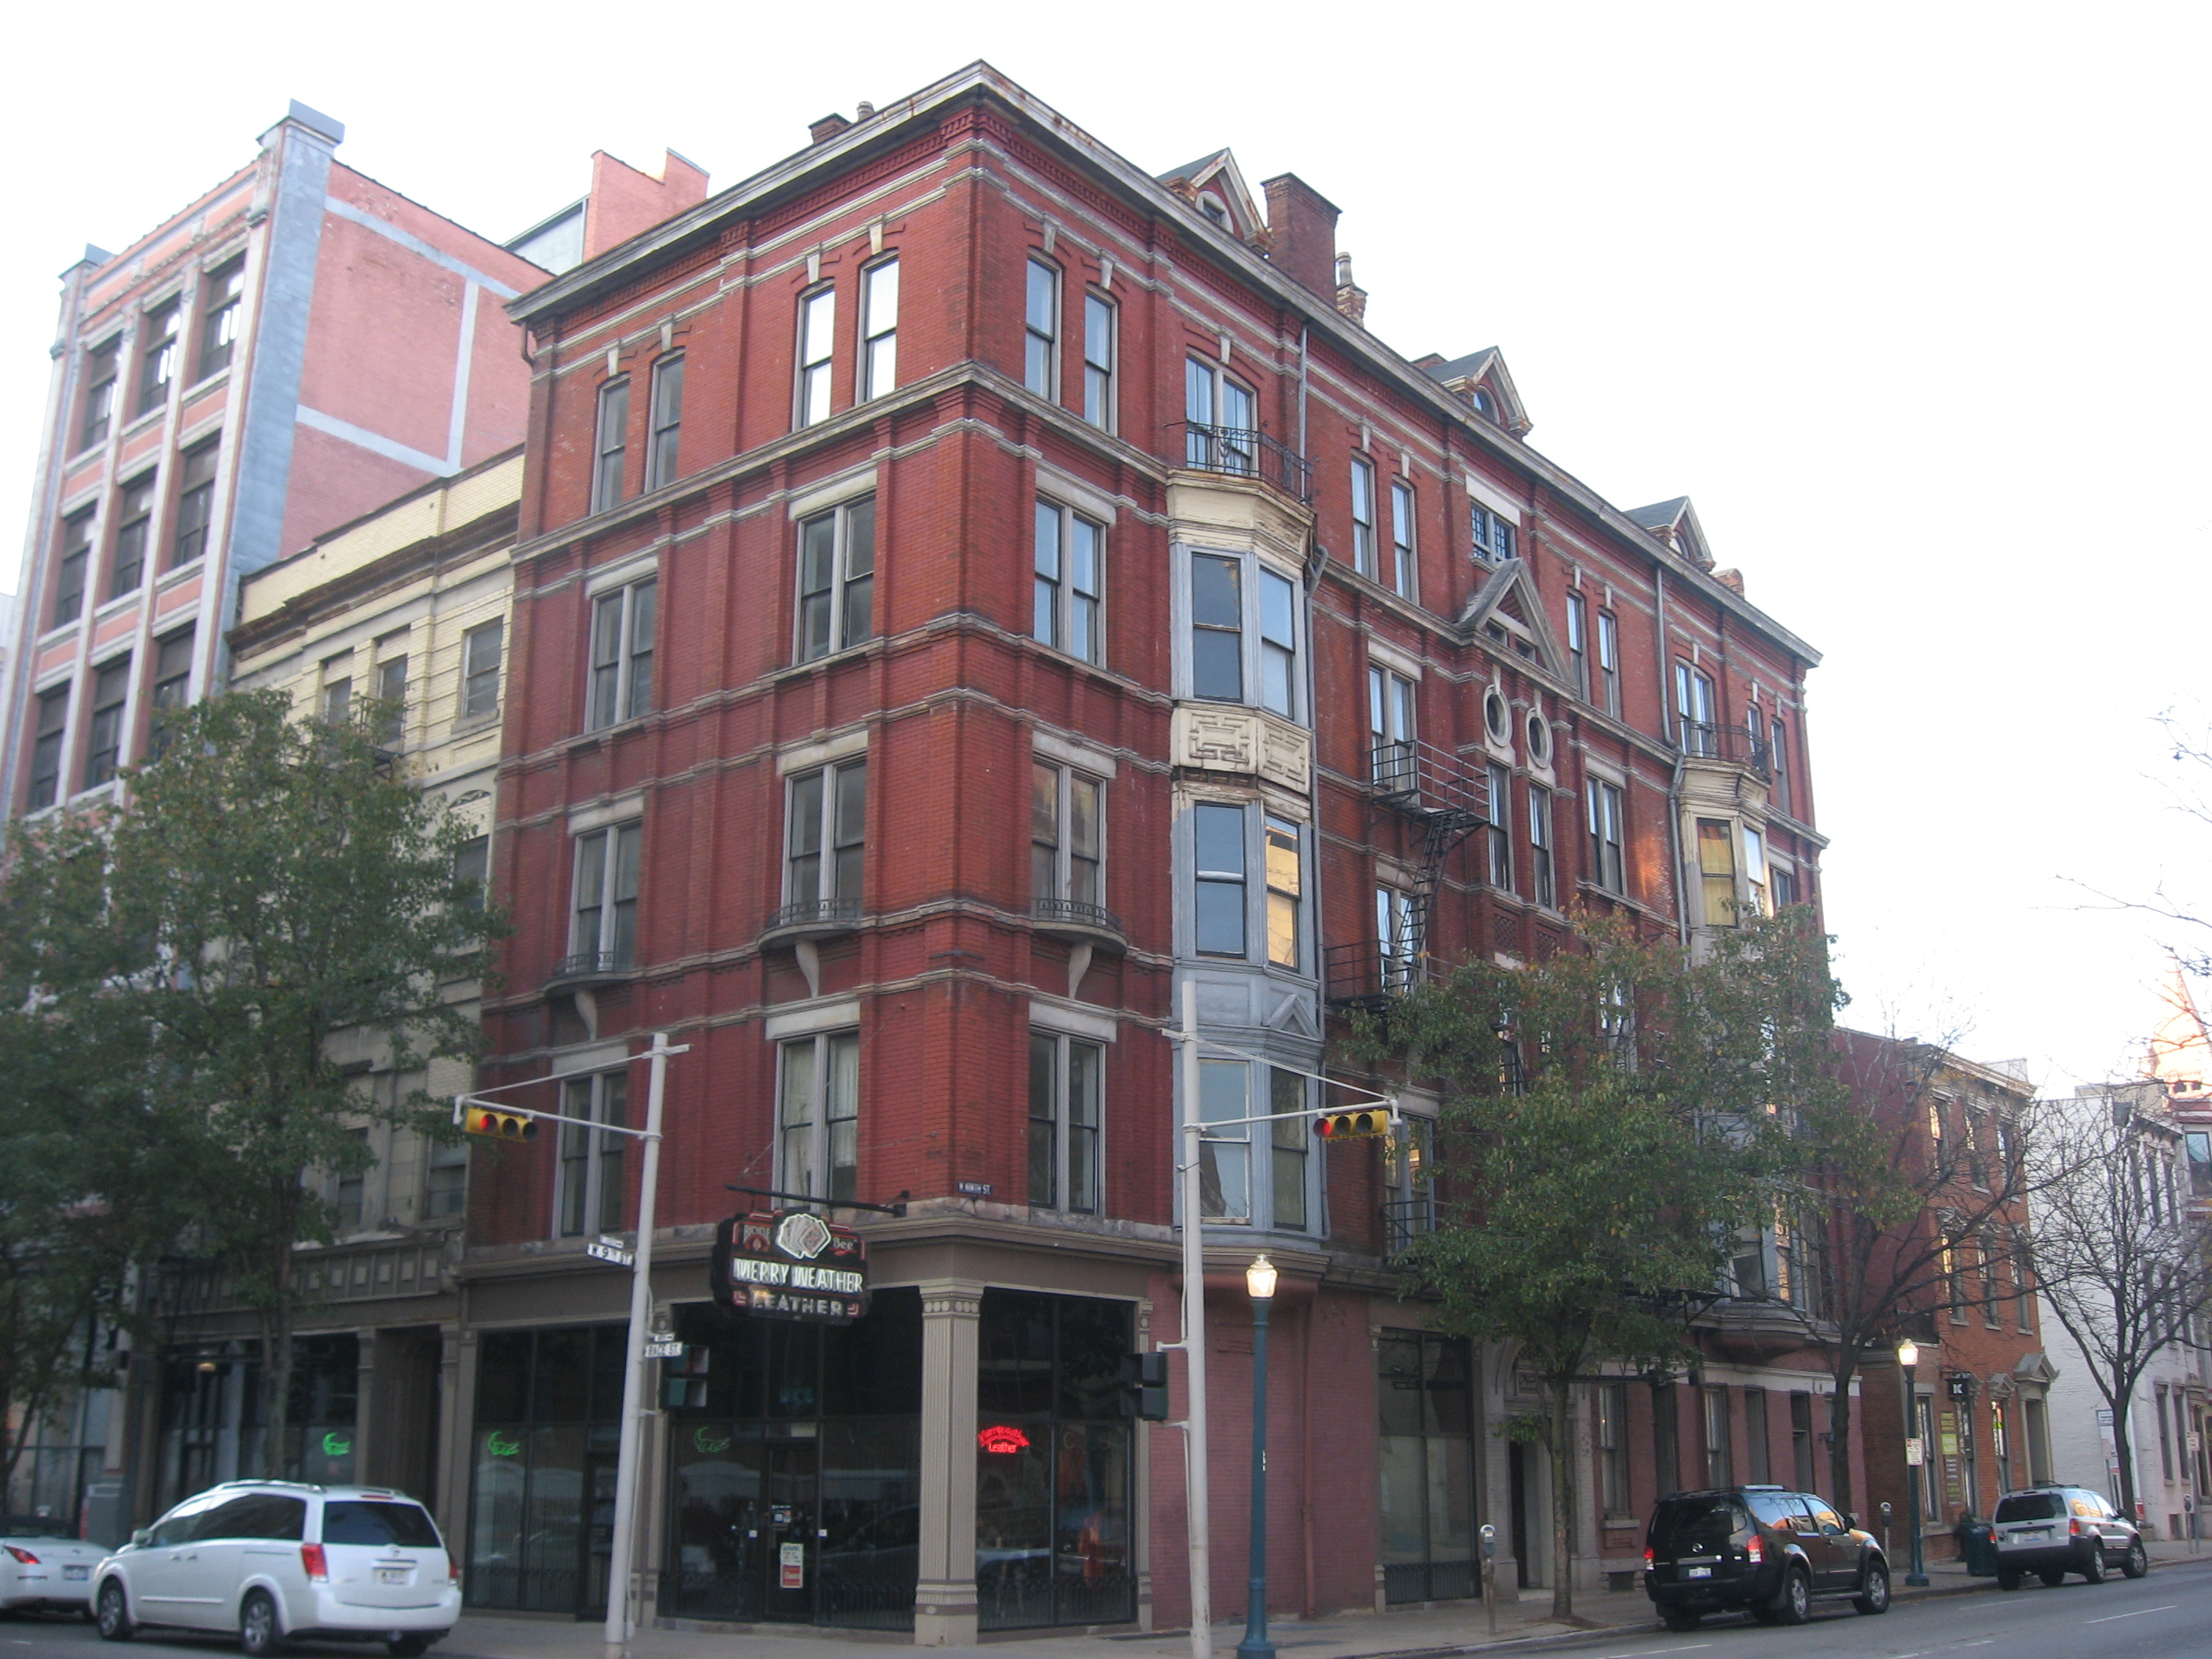 File:Saxony Apartment Building, Cincinnati